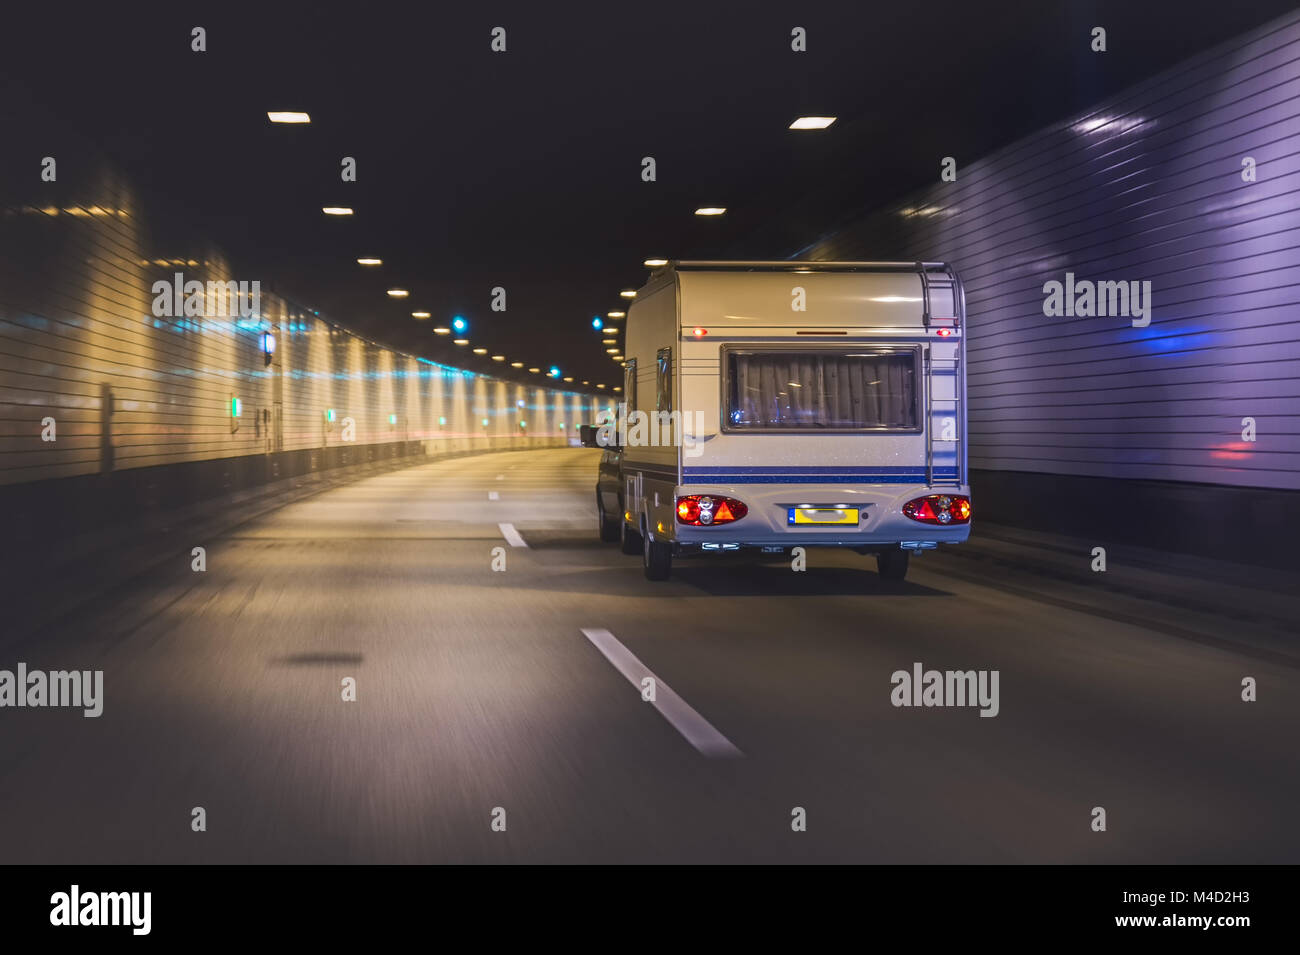 Car with residential trailer drives in a motorway tunnel. - Stock Image